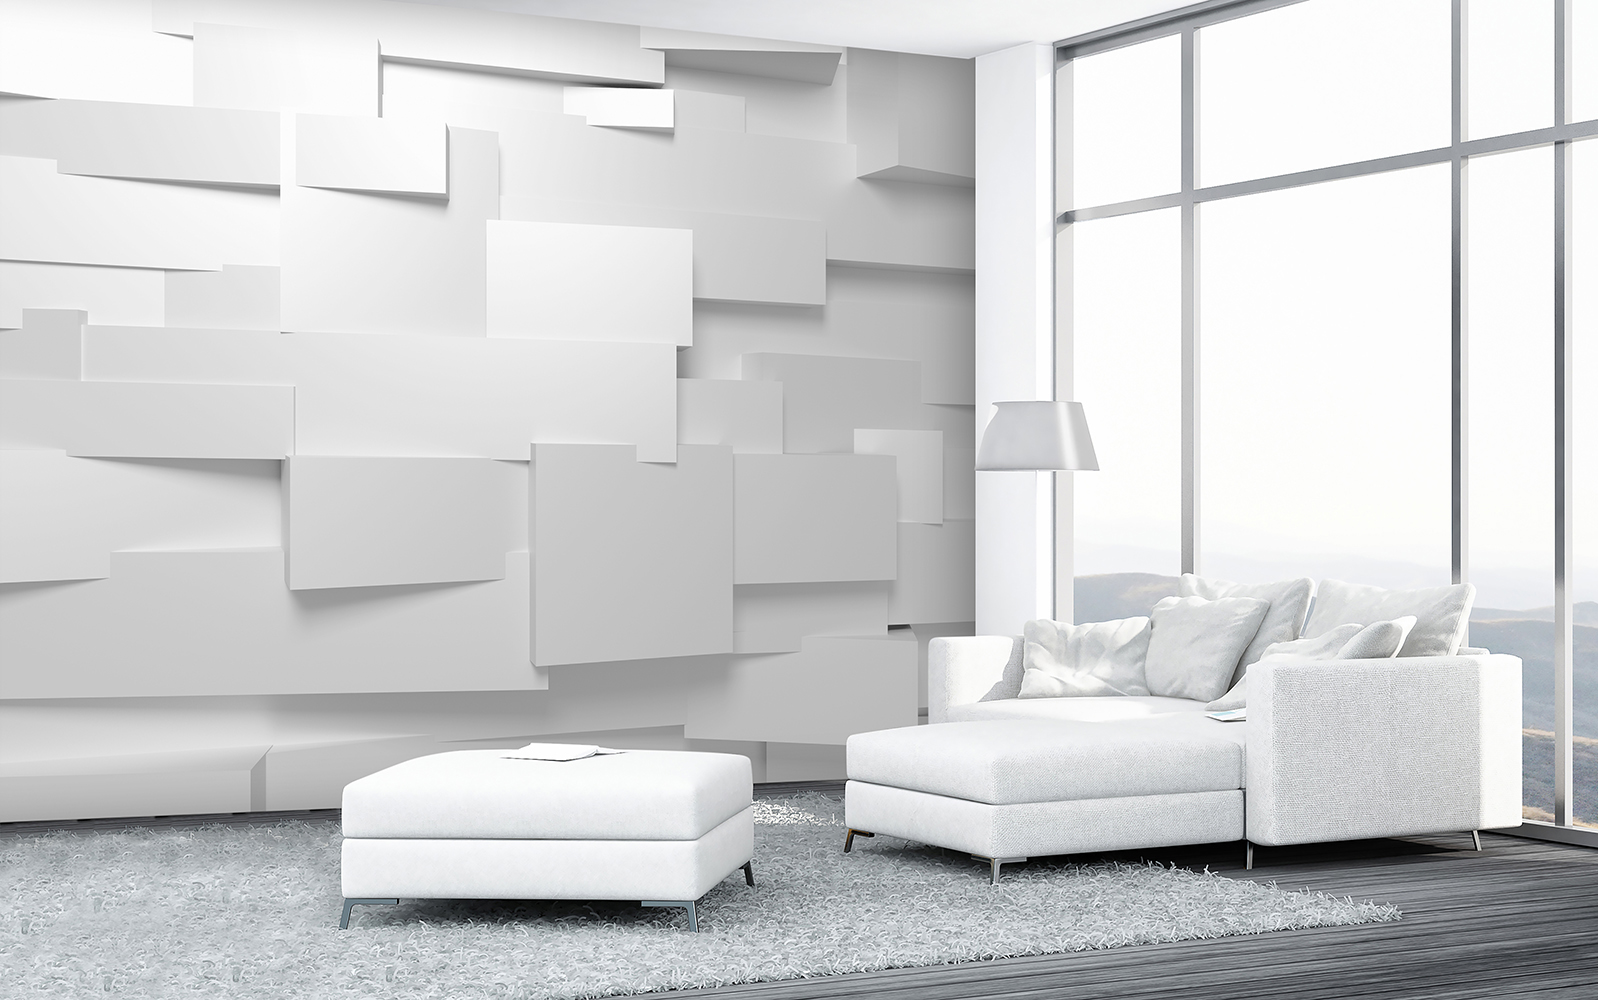 why we love wall murals wizard genius world of wall murals are you an interior designer wall murals can accentuate or provide the basis for designs anything is possible